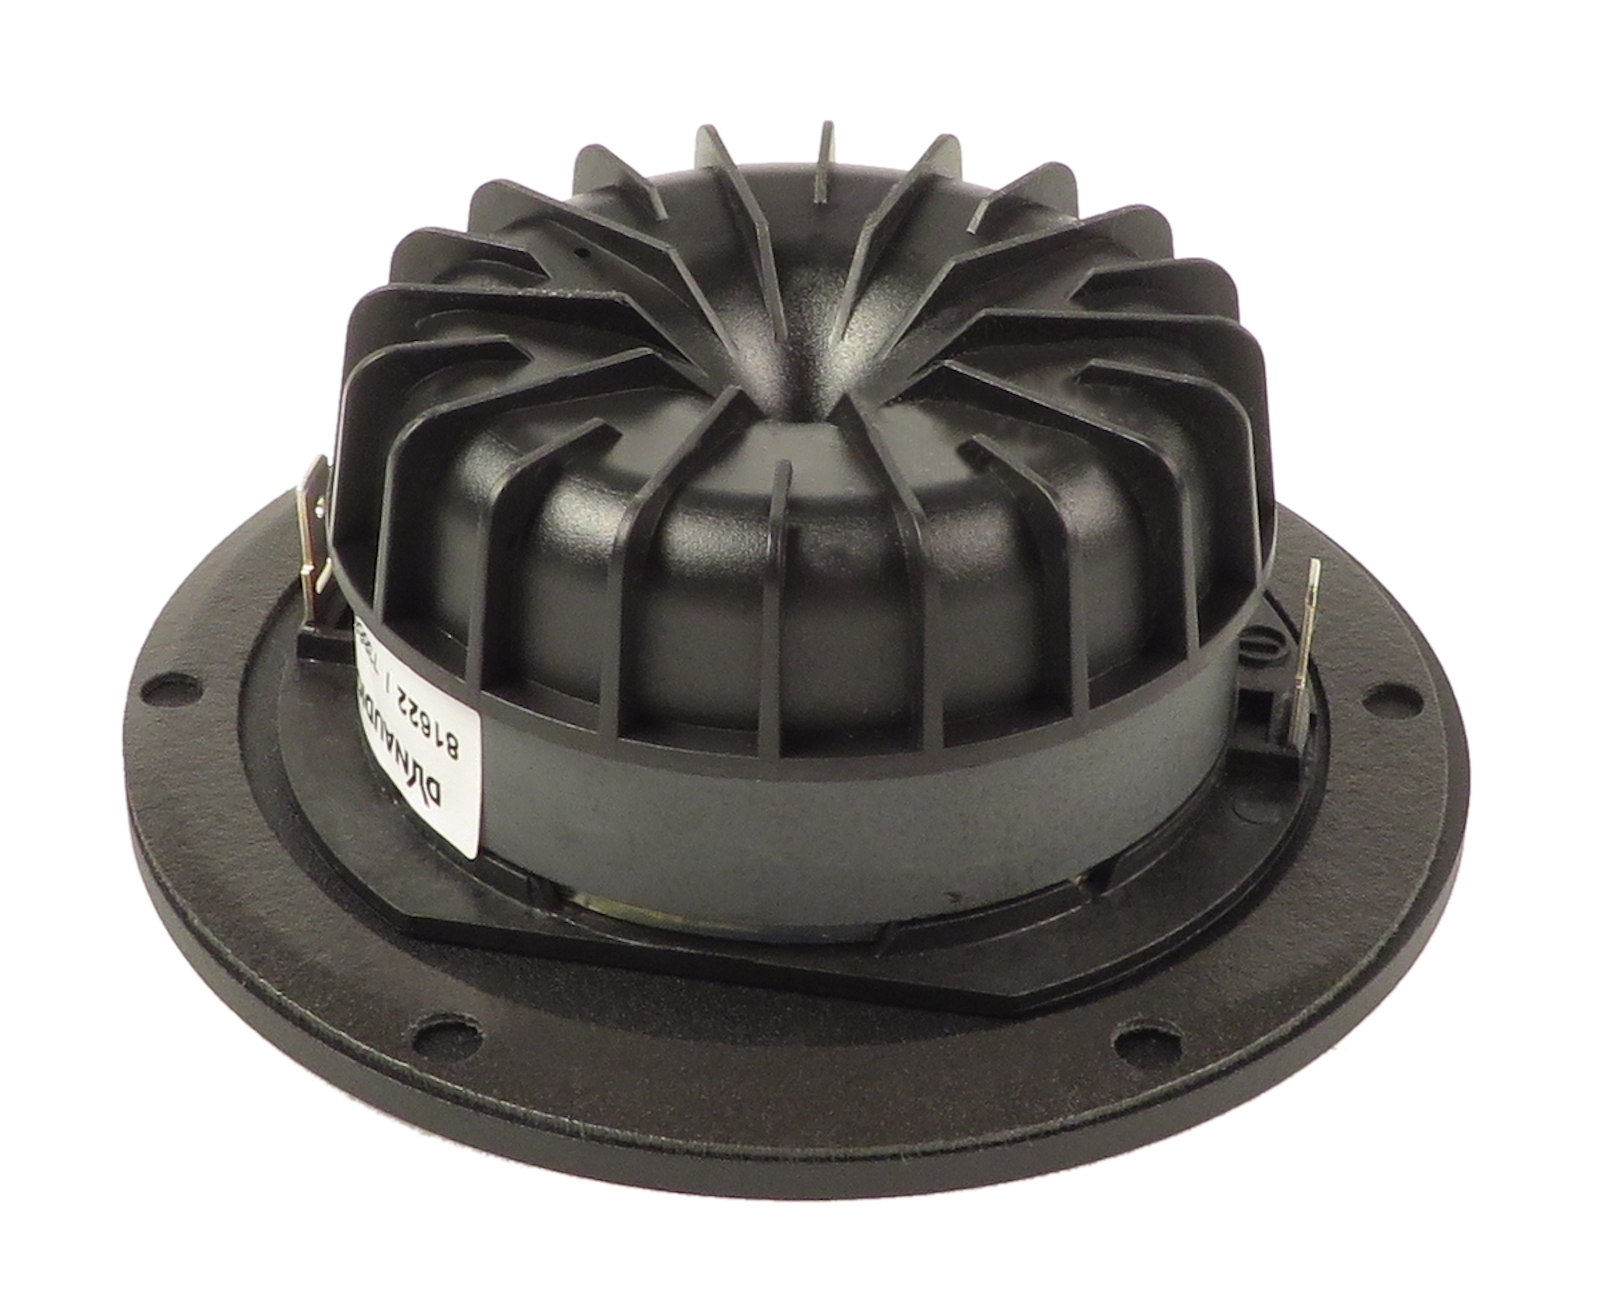 Dynaudio Professional 81622 Replacement Tweeter